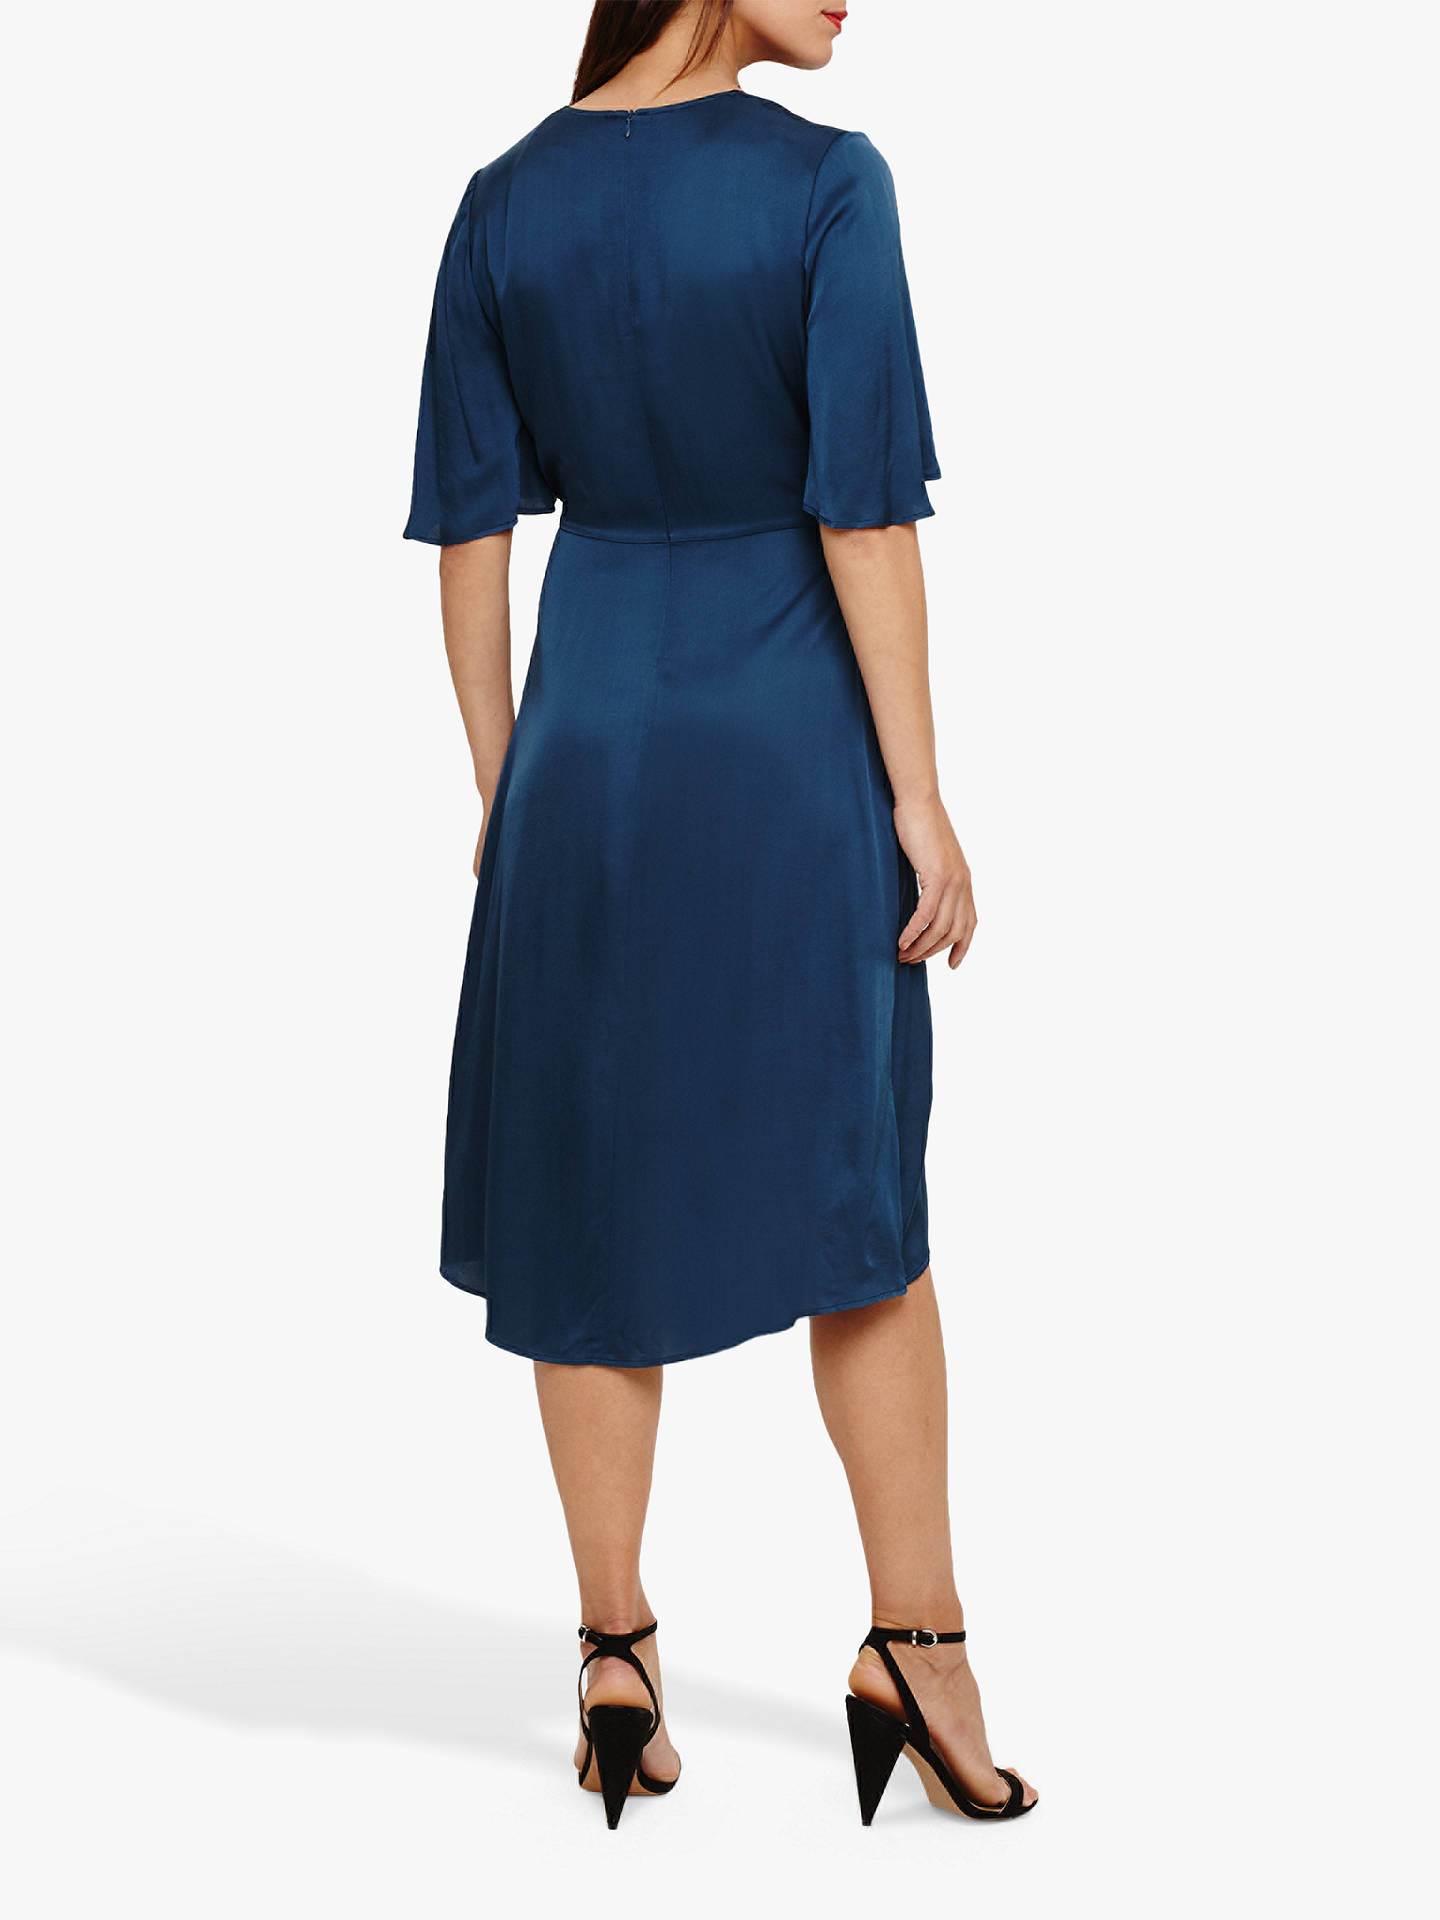 331d12cda072 Buy Phase Eight Rosina Fluted Knot Midi Dress, Petrol, 8 Online at  johnlewis.